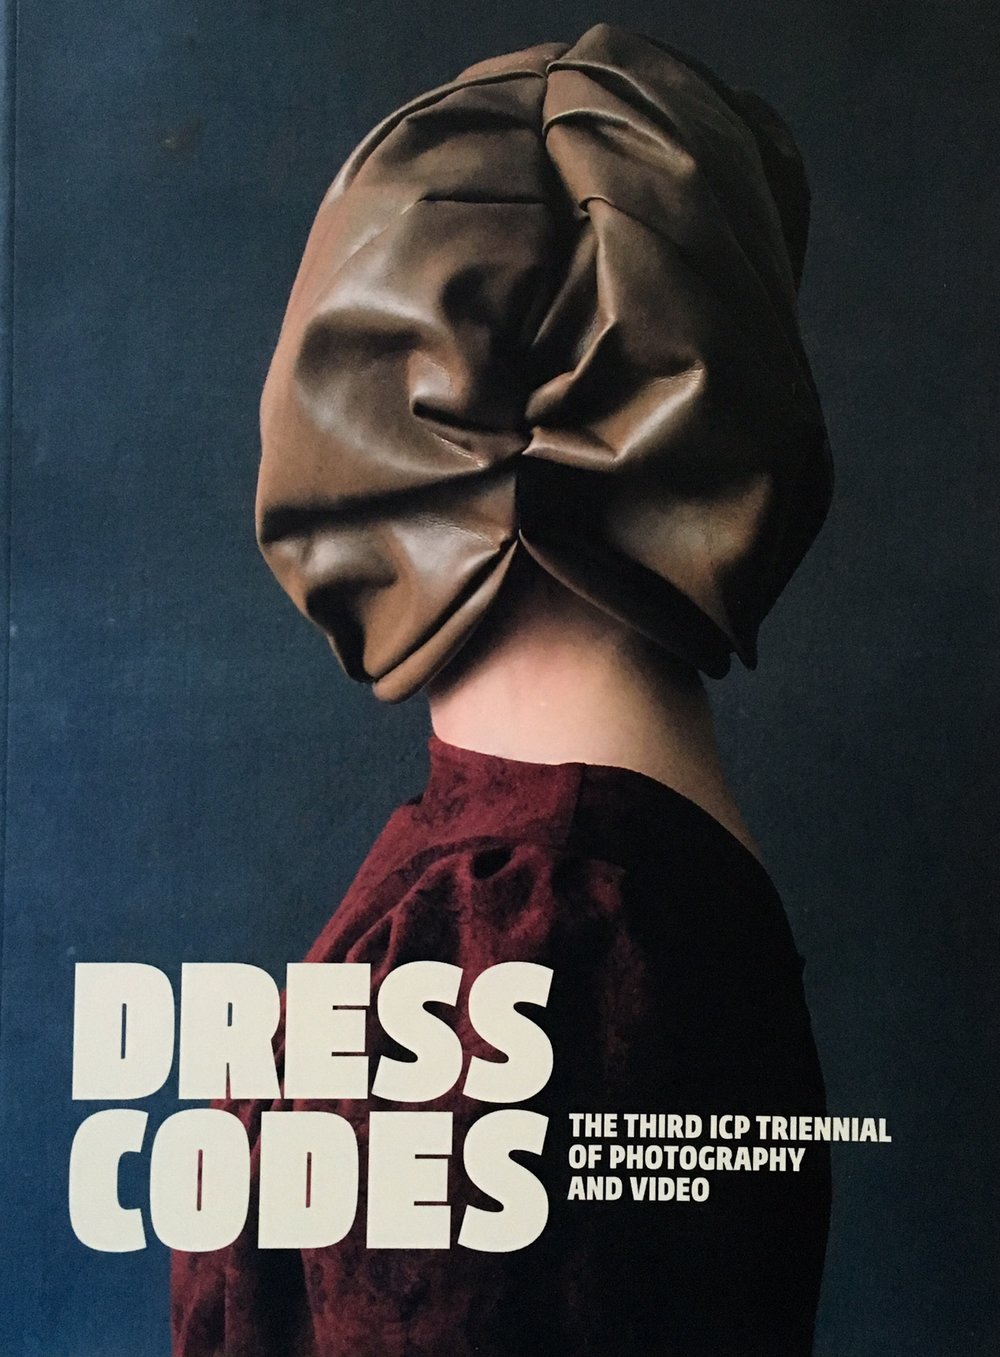 Dress Codes: The Third ICP Triennial of Photography and Video CP/Steidl ISBN: 978-3-86521-950-3